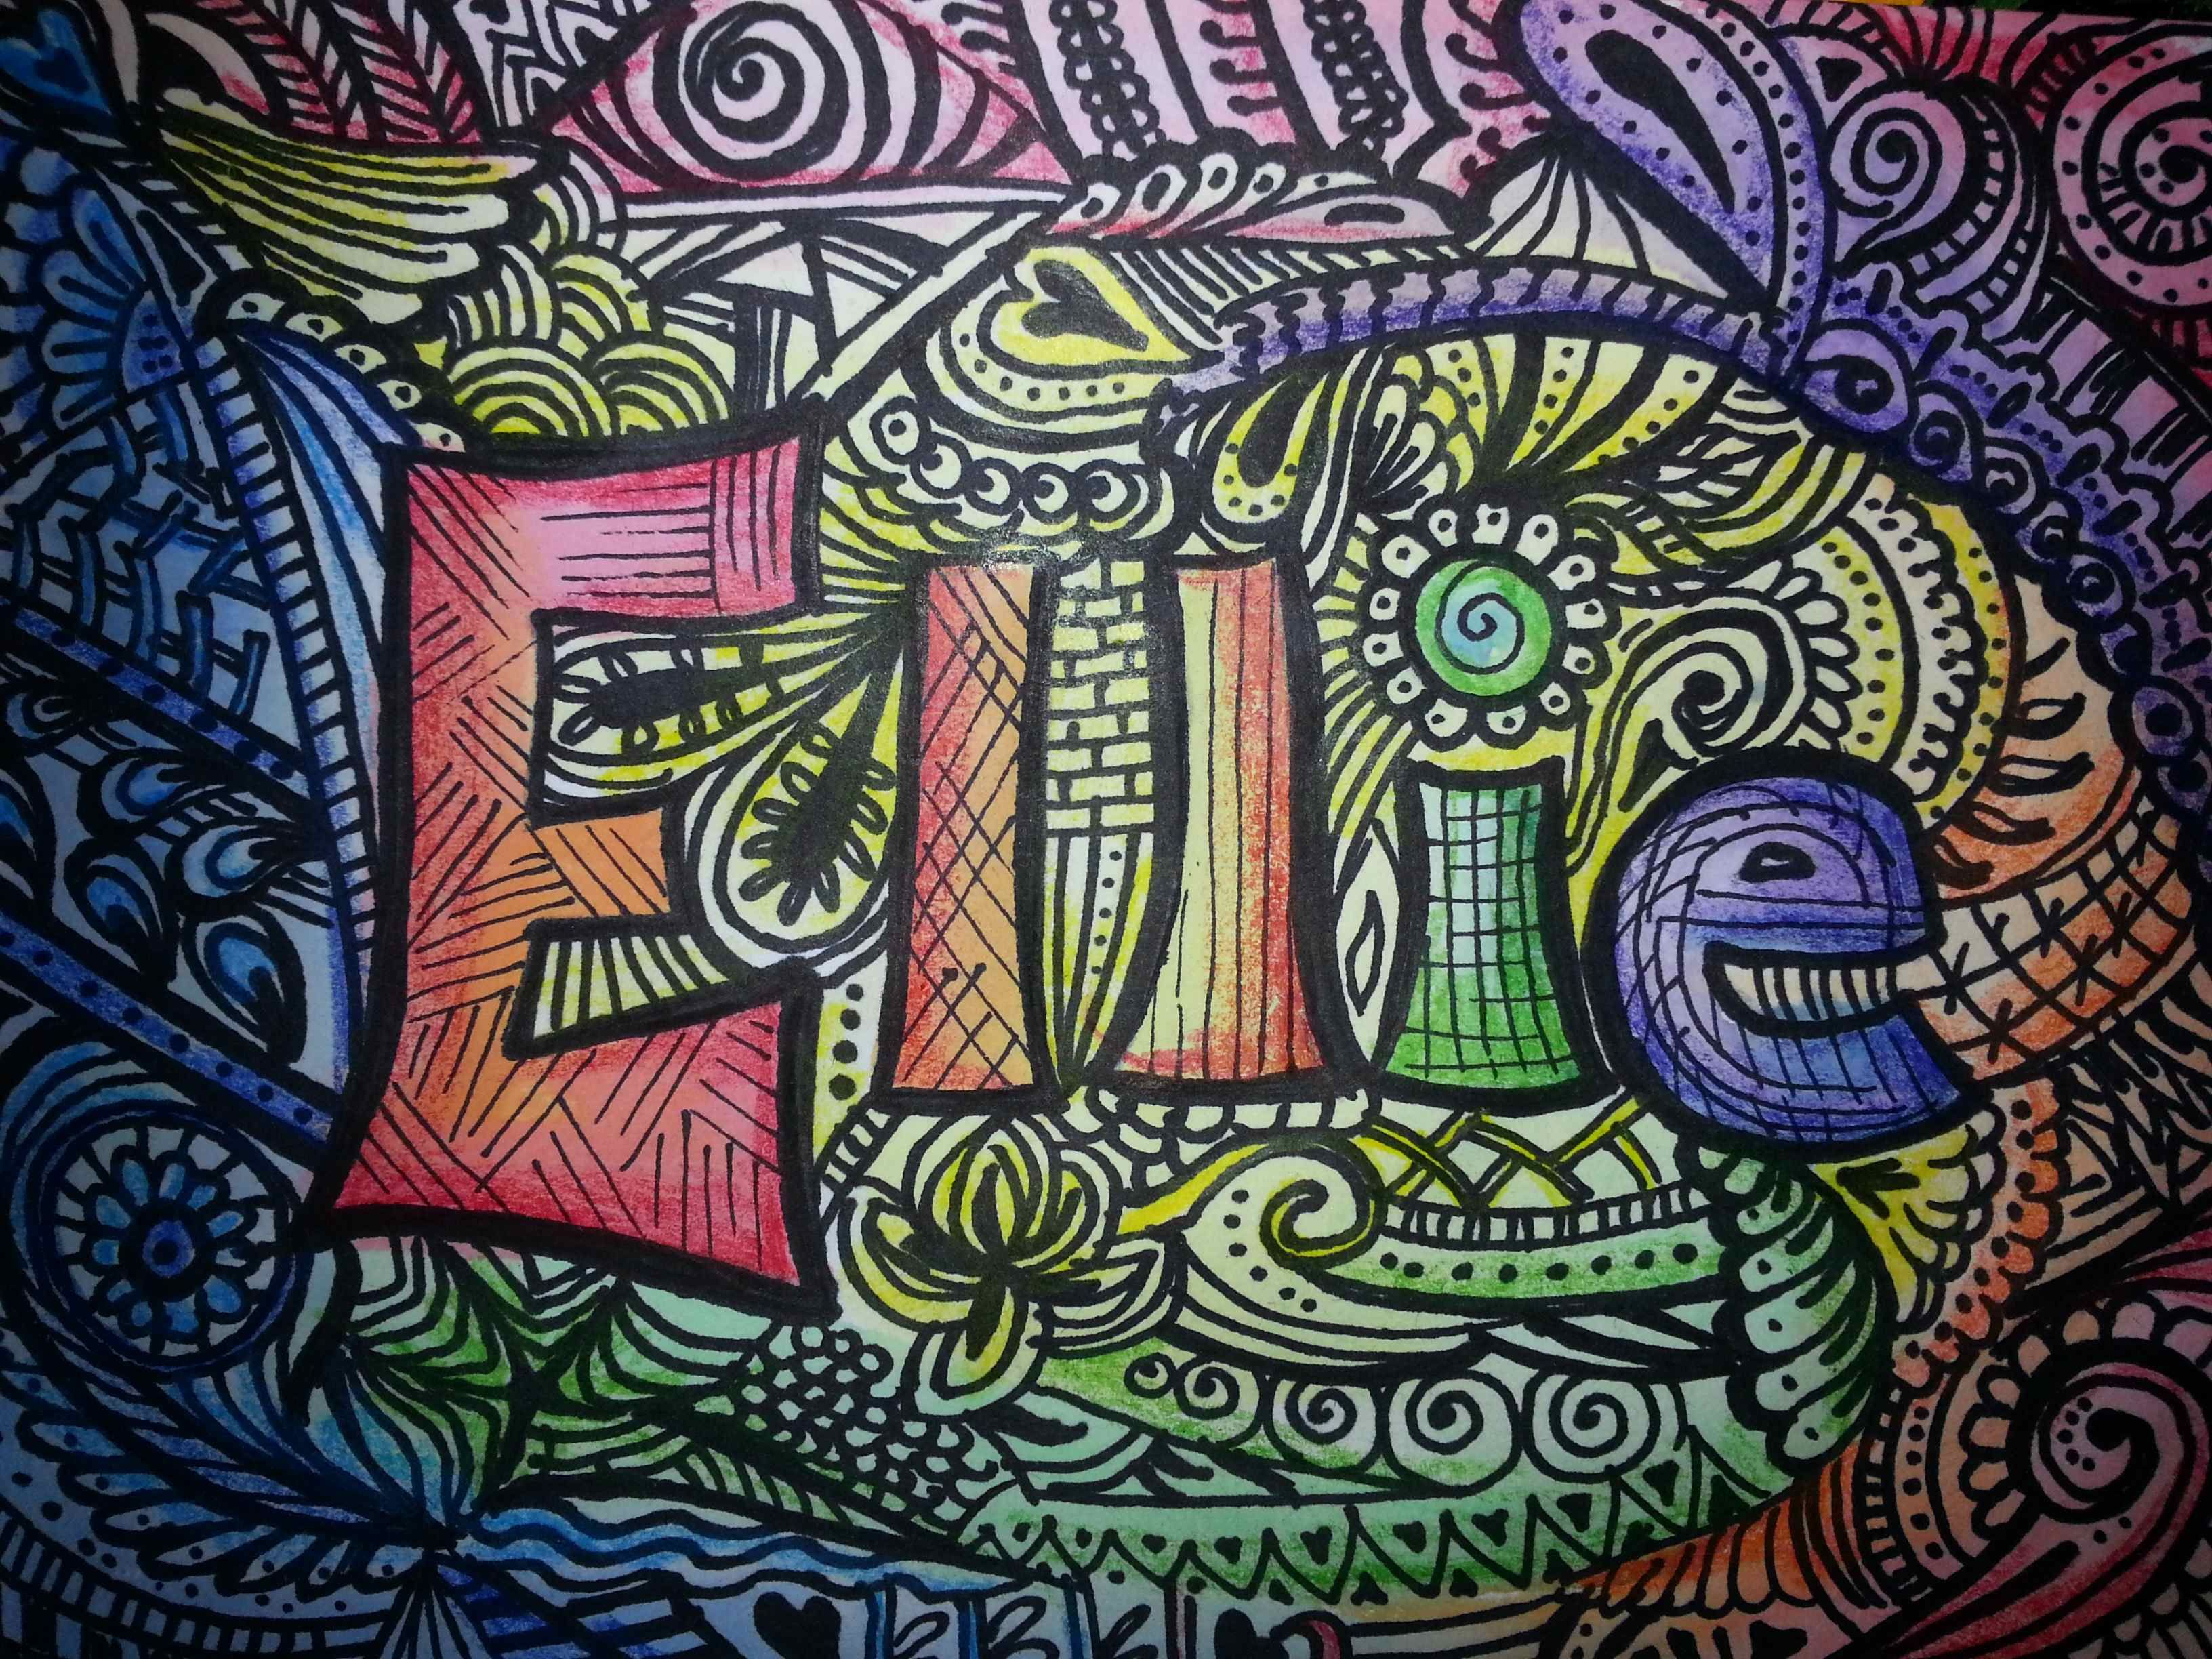 Zentanlged name. Watercolor background, zentangle over